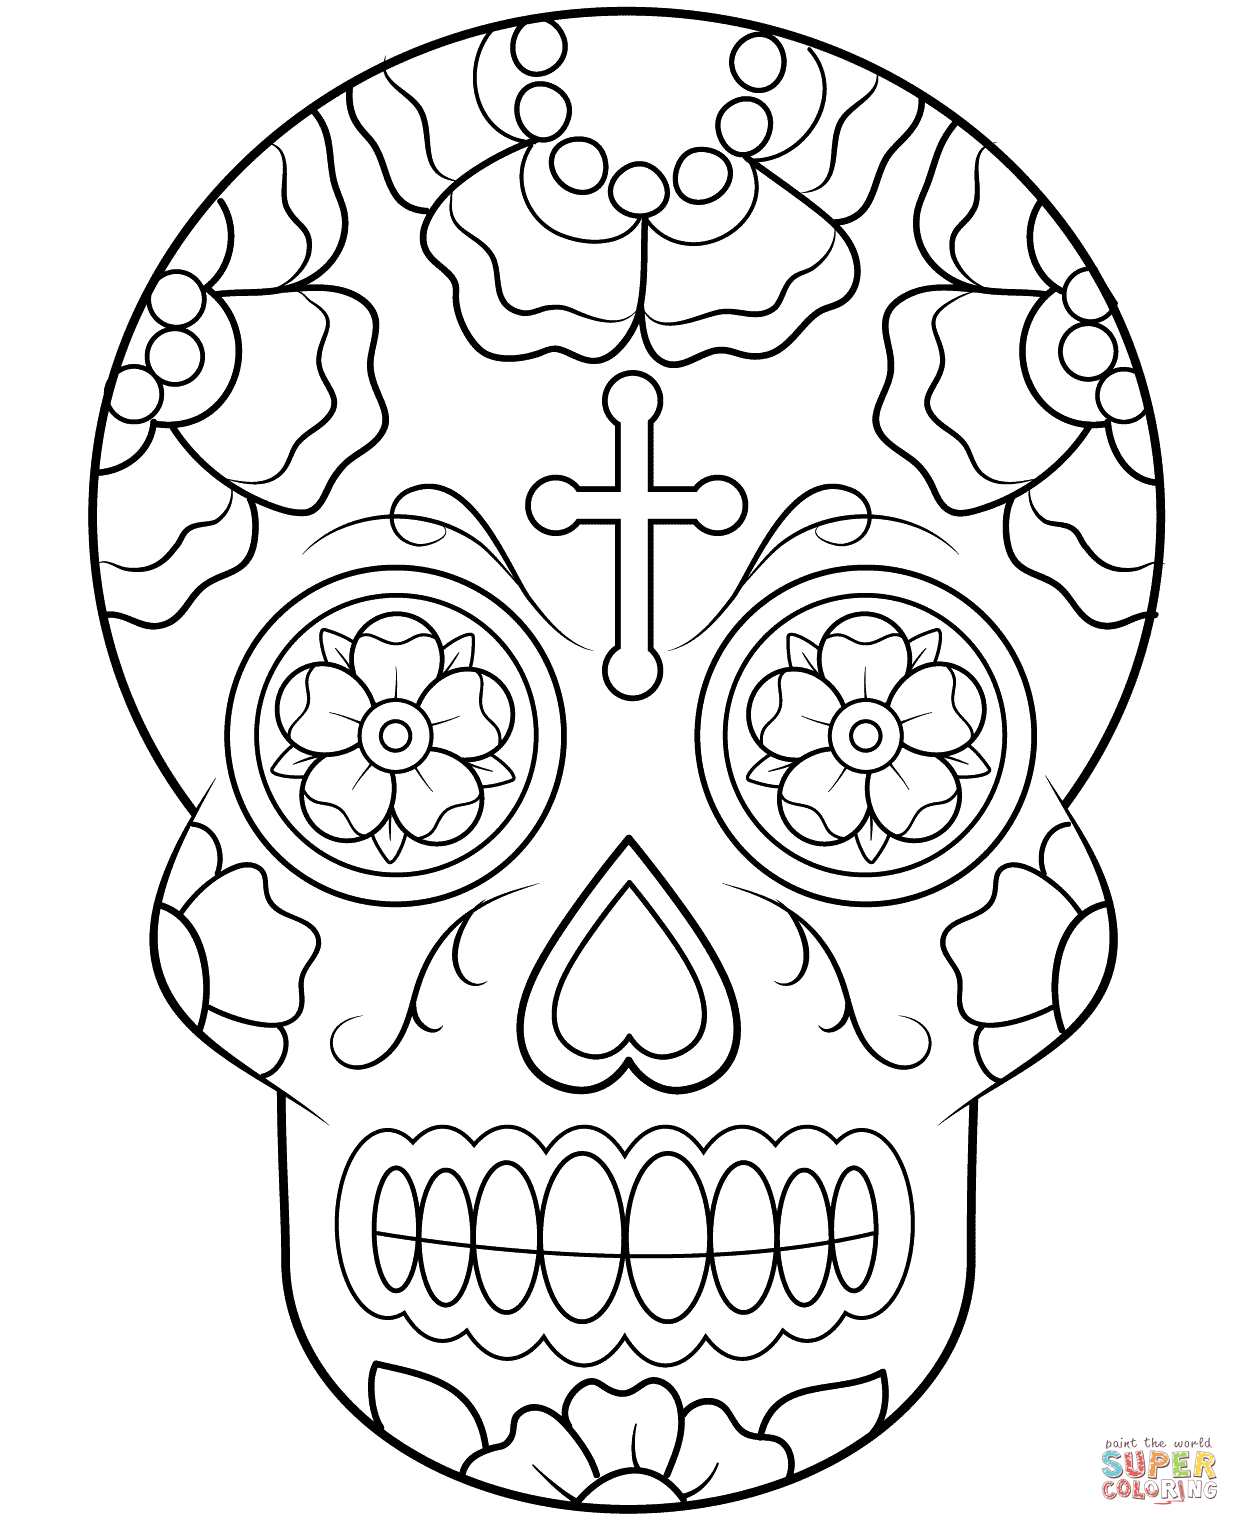 flaming skull coloring pages realistic flames drawing at getdrawings free download coloring pages skull flaming